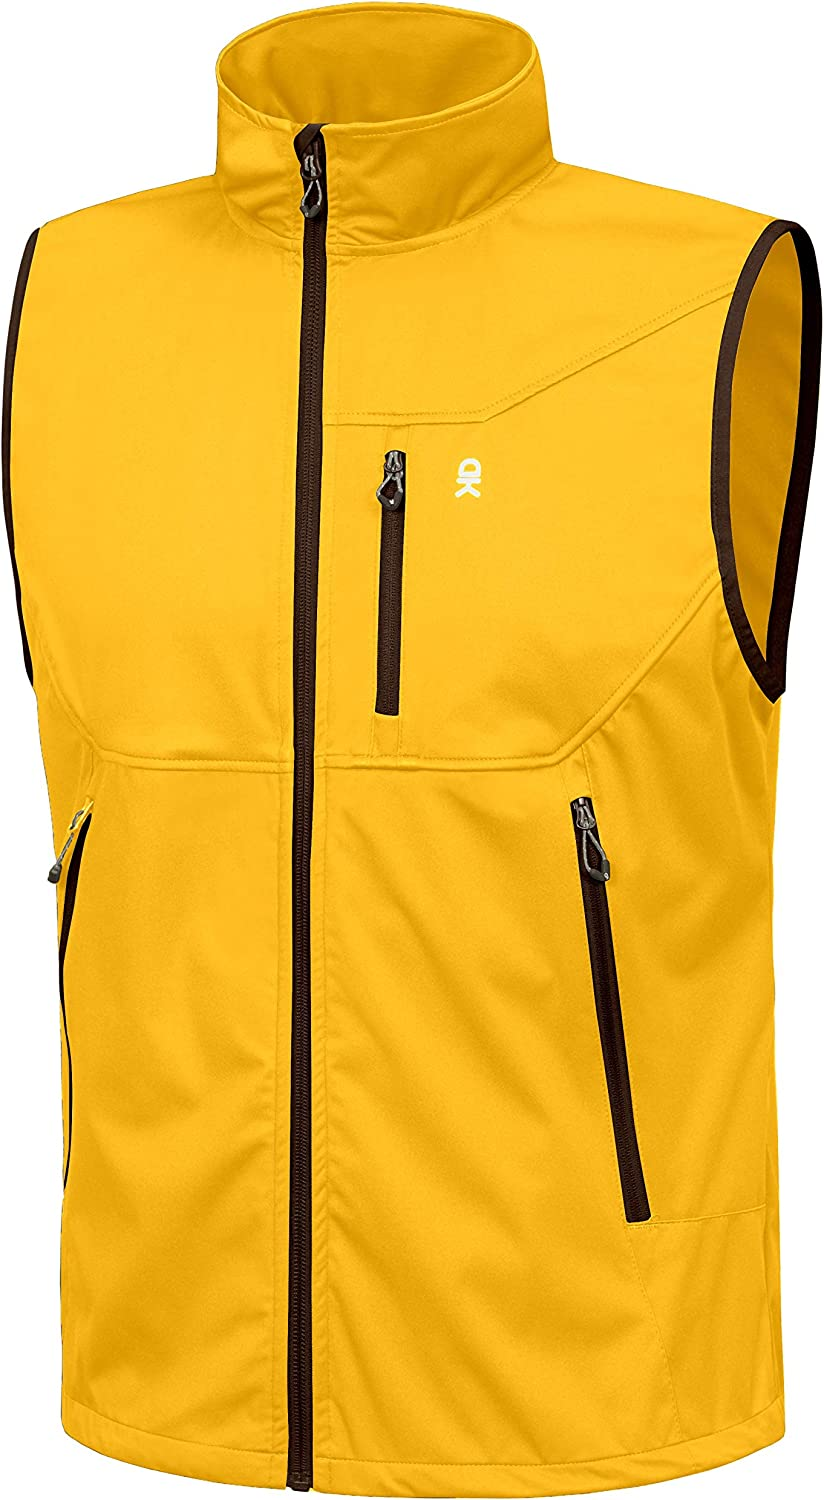 Little Donkey Andy Men's Lightweight Vest S New Orleans Mall Softshell Max 63% OFF Windproof